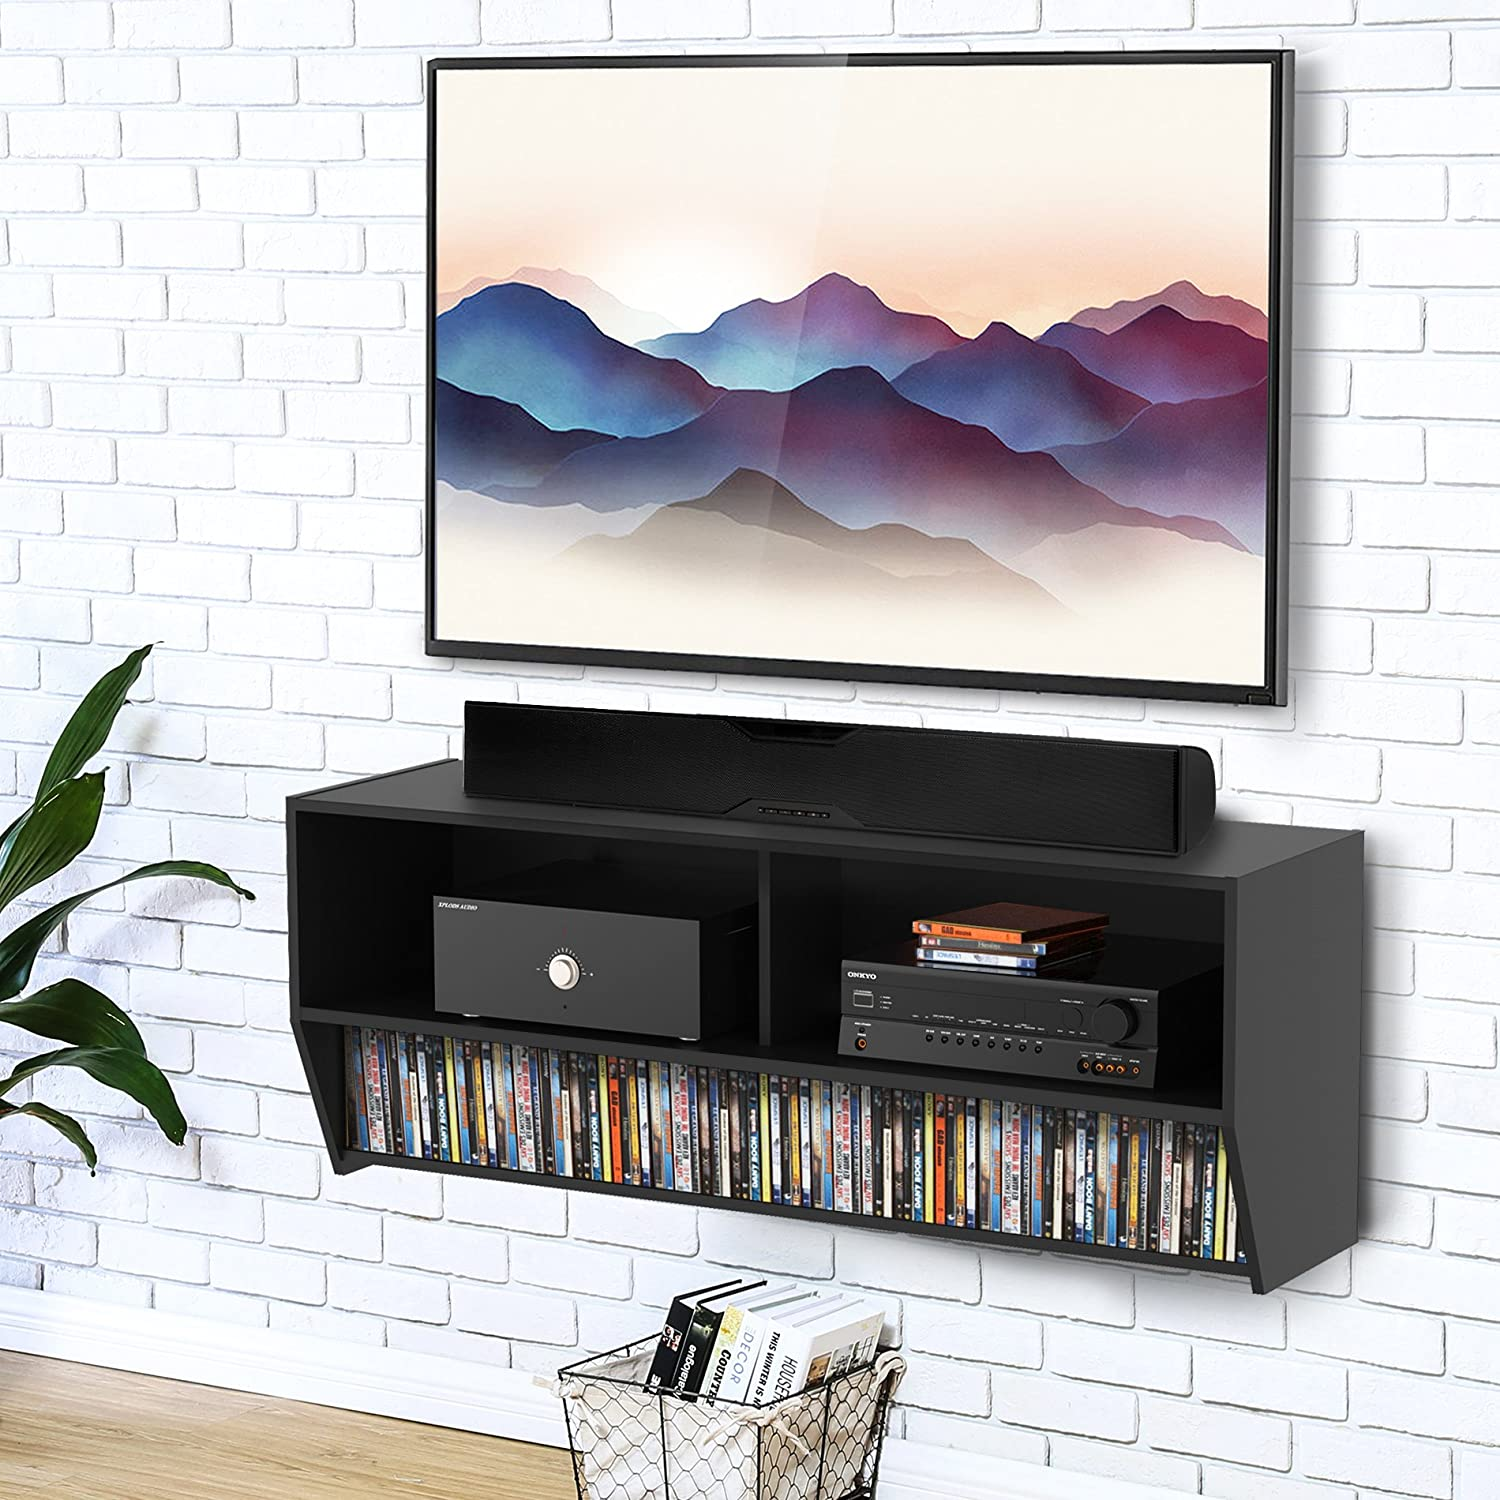 Fitueyes Floating TV Stand Wall Mounted Audio Video Console Shelf Wood Black for Xbox one/PS4/vizio/Sumsung/sony TV DS210302WB